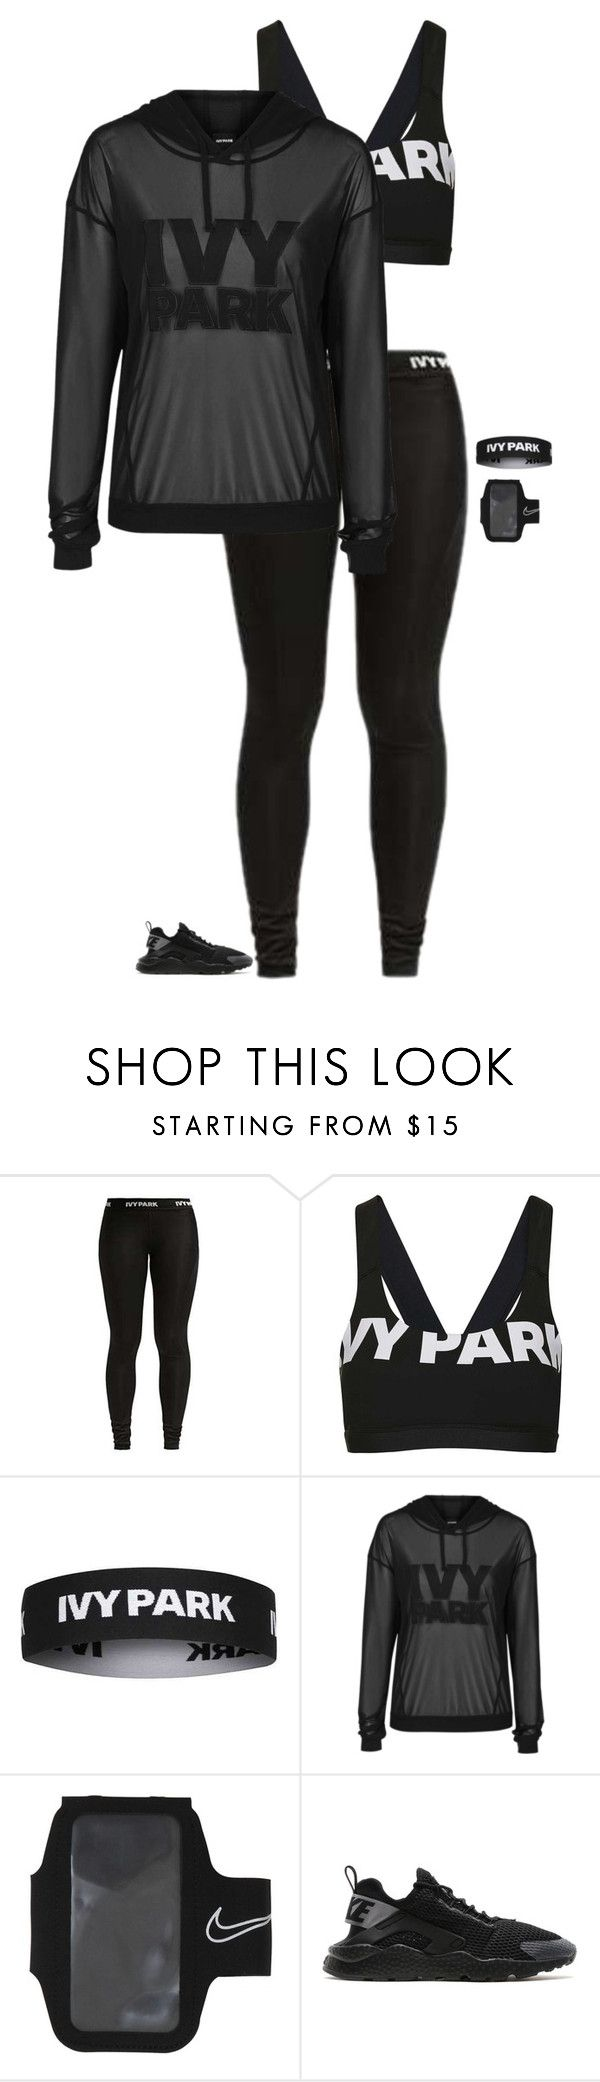 """""""Ivy Park Workout"""" by bellarose99 ❤ liked on Polyvore featuring Topshop and NIKE"""